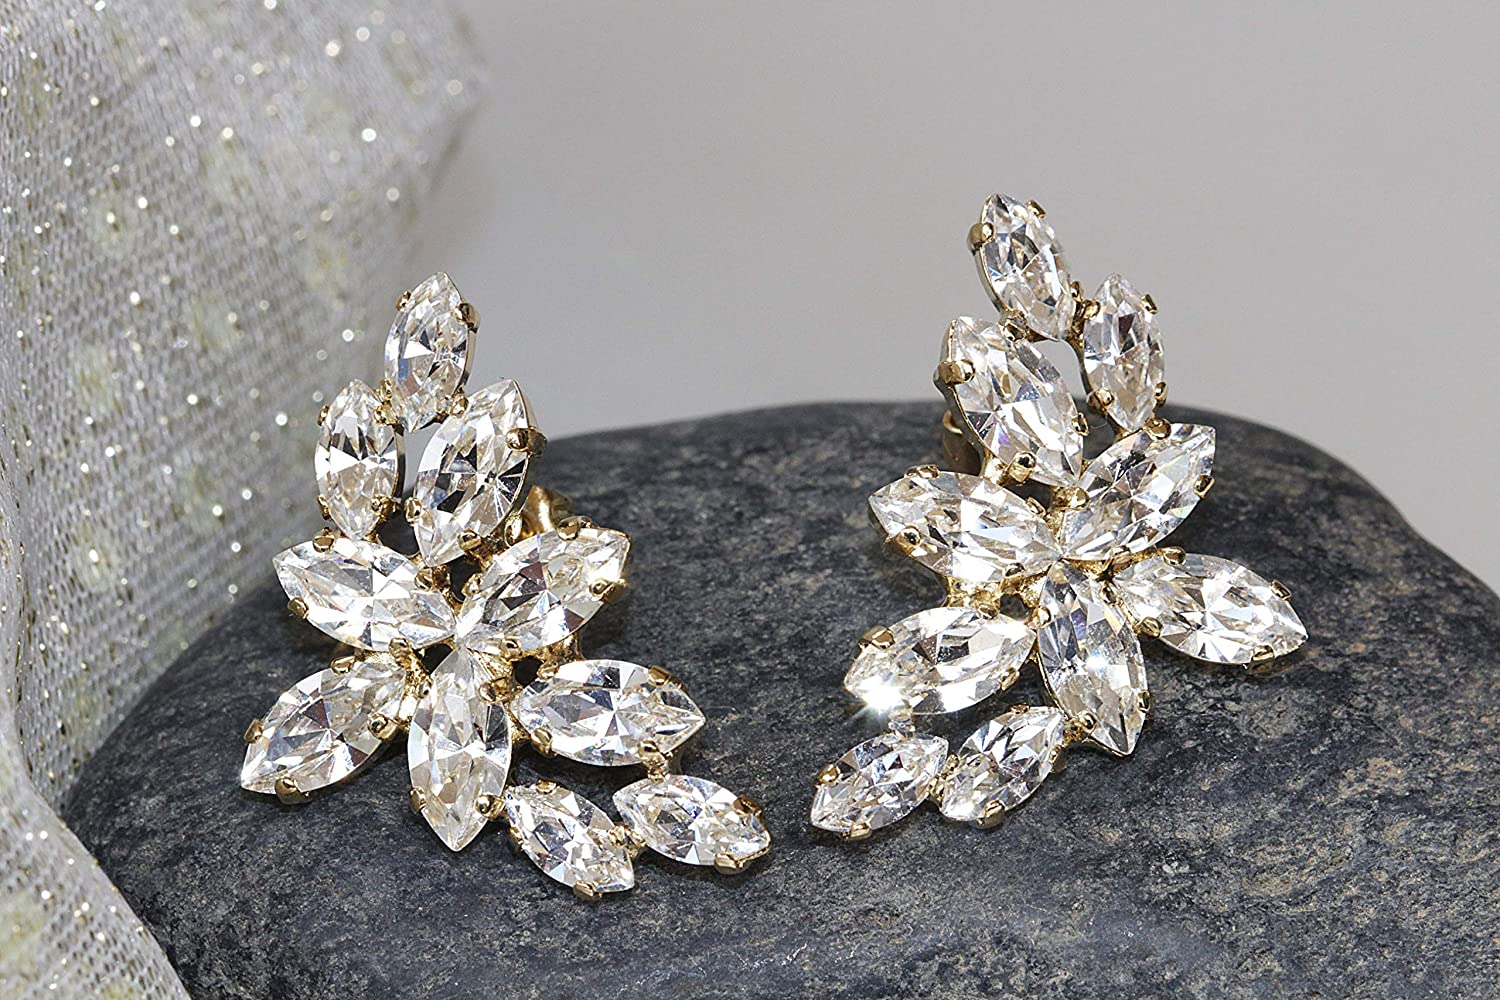 Details about  /CLUSTER 14K WHITE GOLD FINISH 925 STERLING SILVER FANCY WEDDINGS GIFT EARRINGS